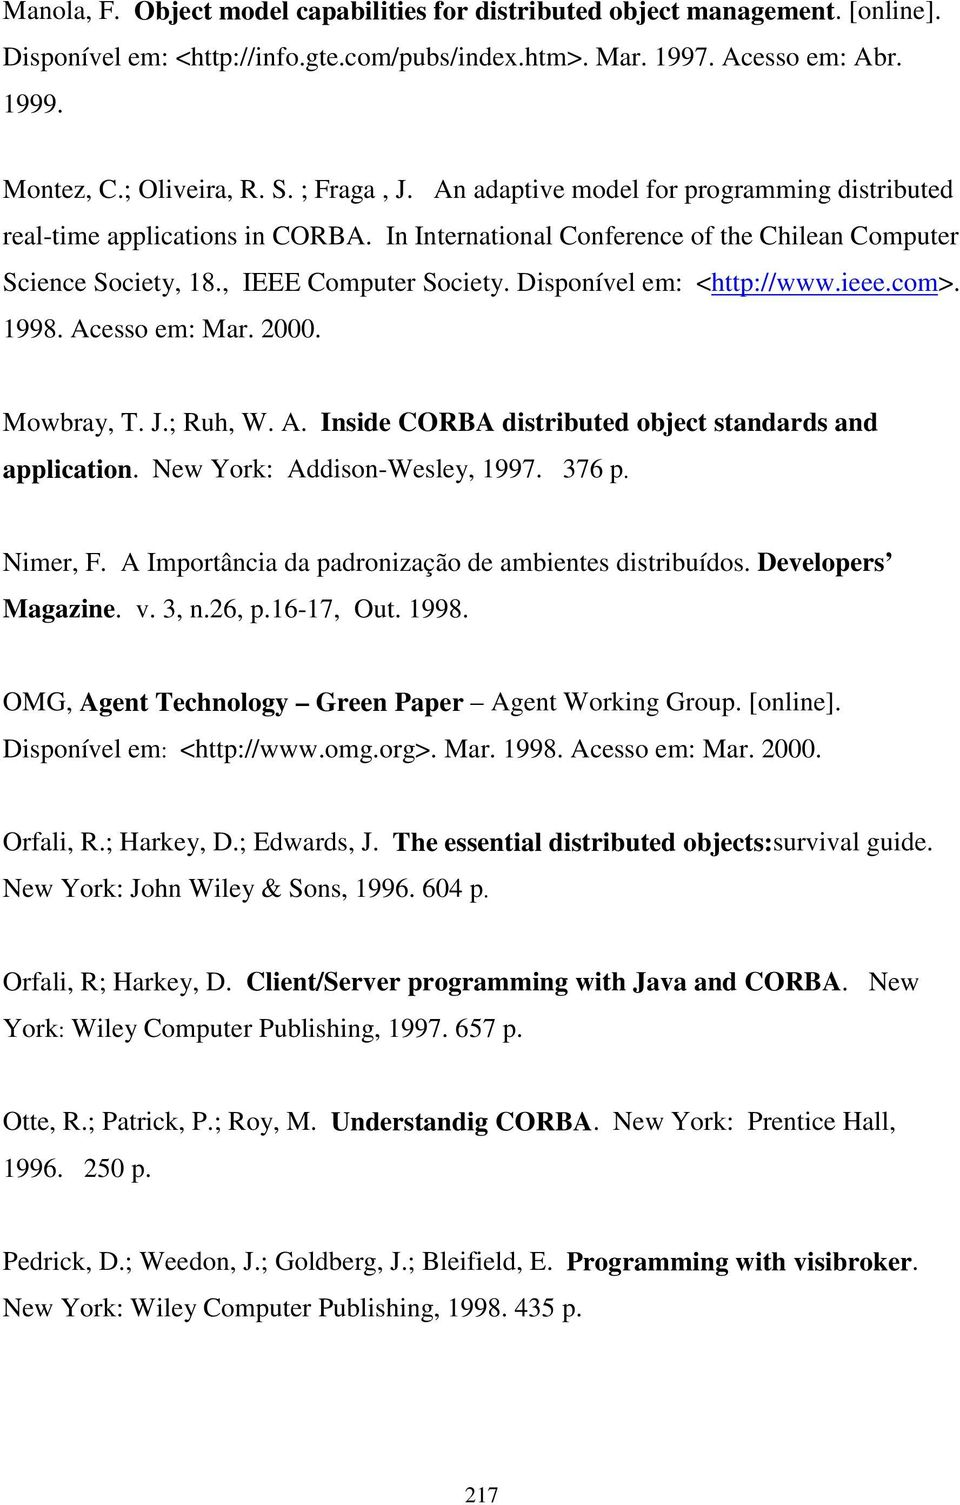 Disponível em: <http://www.ieee.com>. 1998. Acesso em: Mar. 2000. Mowbray, T. J.; Ruh, W. A. Inside CORBA distributed object standards and application. New York: Addison-Wesley, 1997. 376 p. Nimer, F.